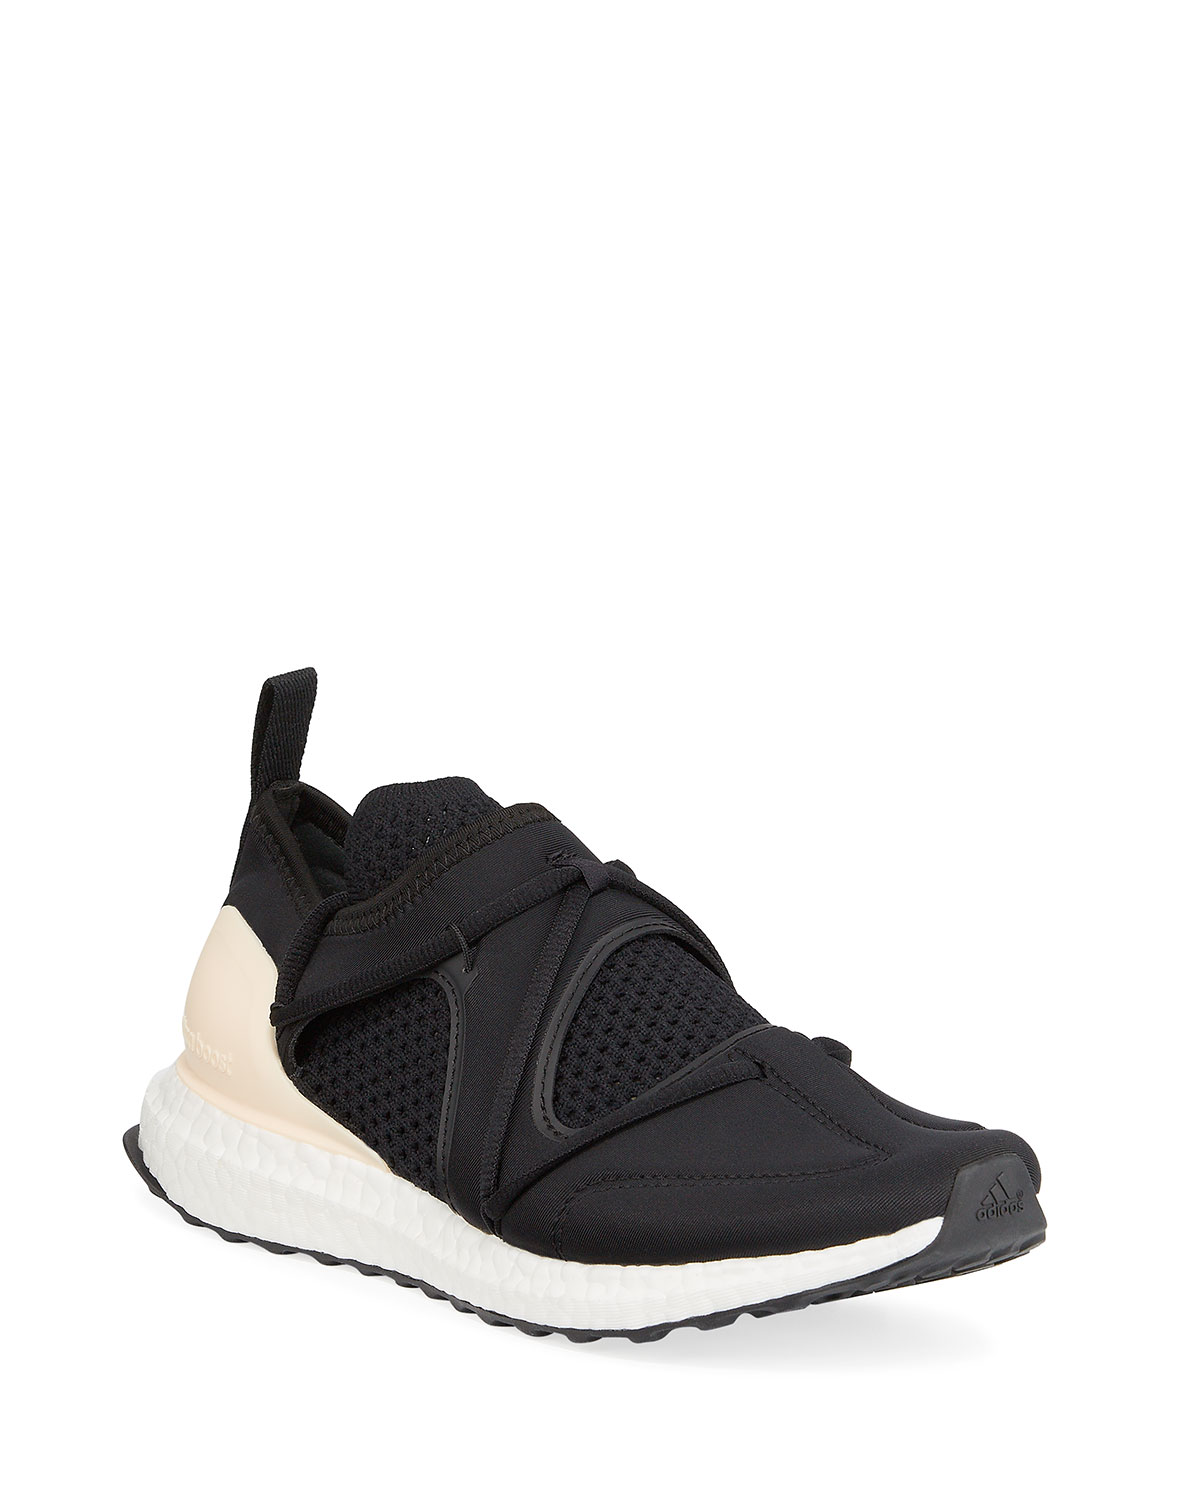 f337a2f7a049e6 adidas by Stella McCartney UltraBoost T Neoprene Caged Sneakers ...